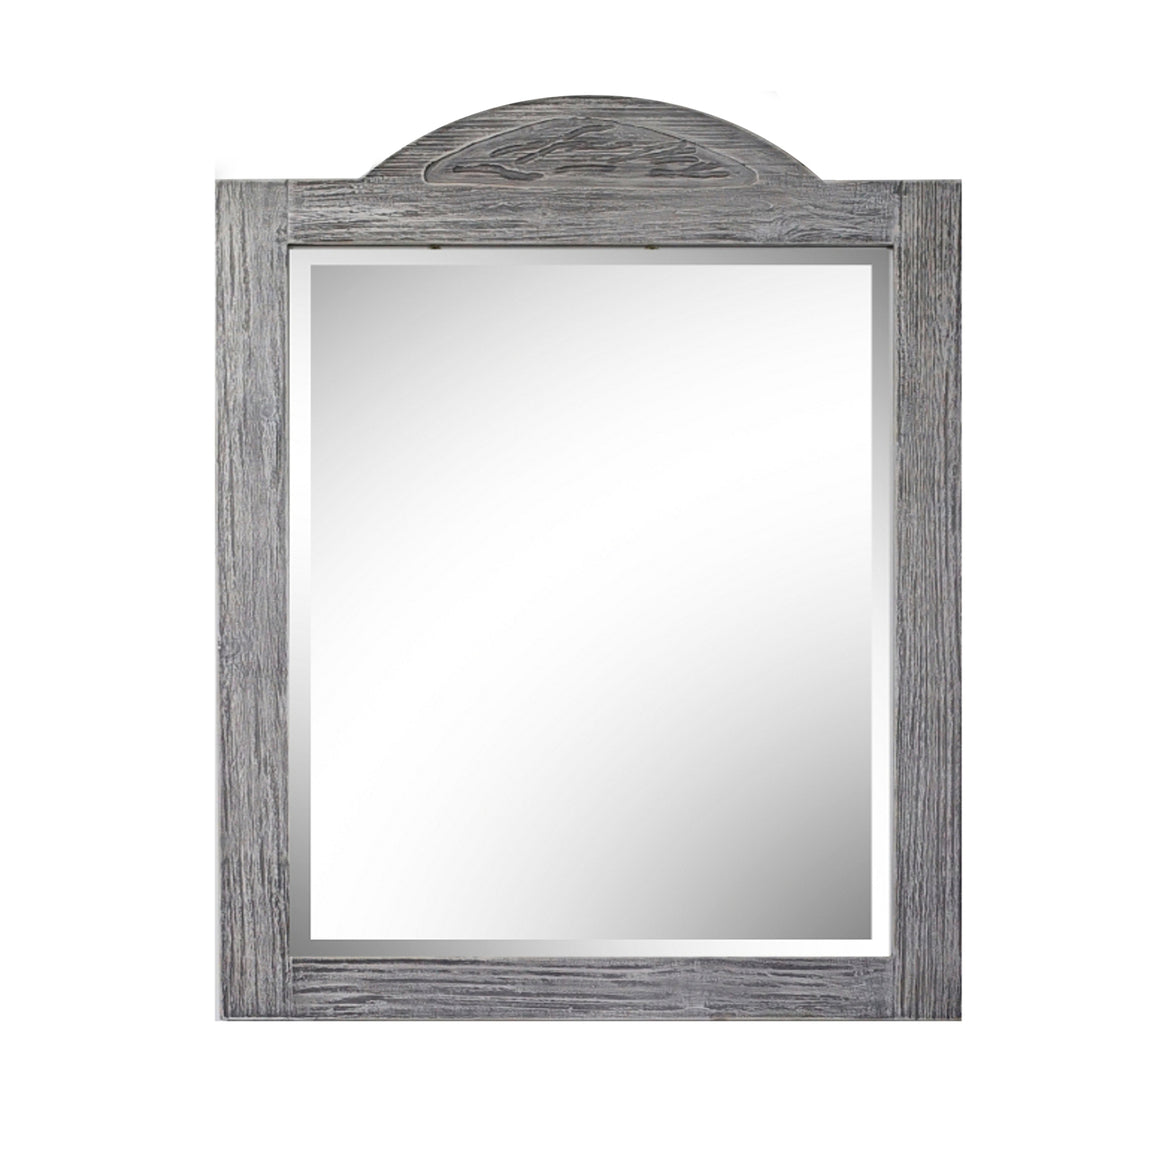 "26"" RUSTIC SOLID FIR MIRROR IN GREY DRIFTWOOD (26"" H x 36"" H)"